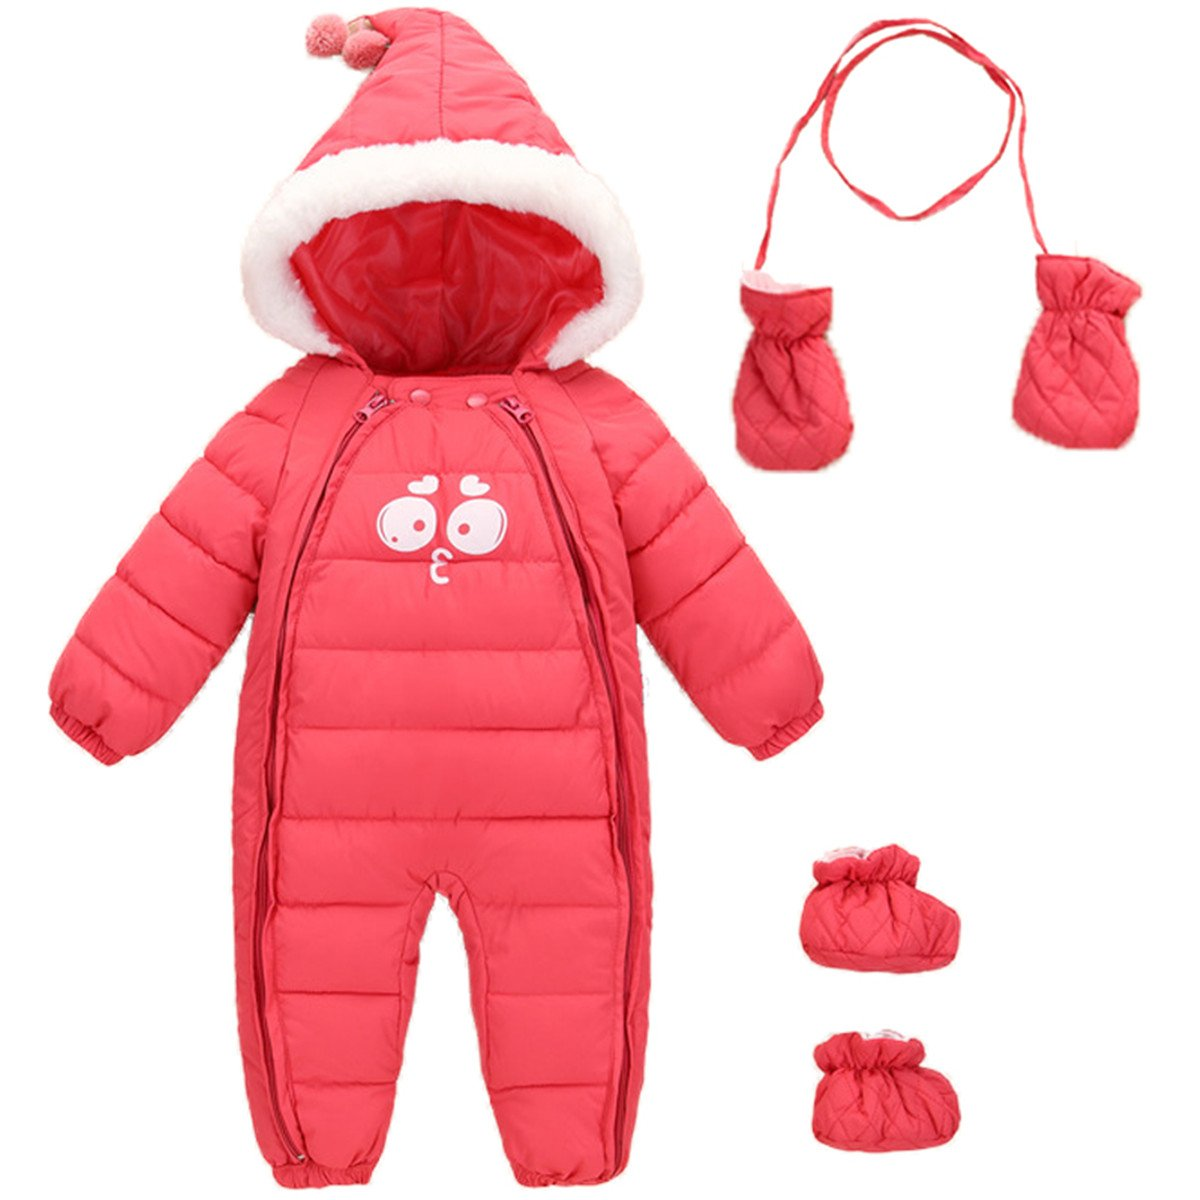 JELEUON Baby Girls Boys One Piece Two Zipper Cartoon Down Jacket Jumpsuit Romper with Gloves and Shoes